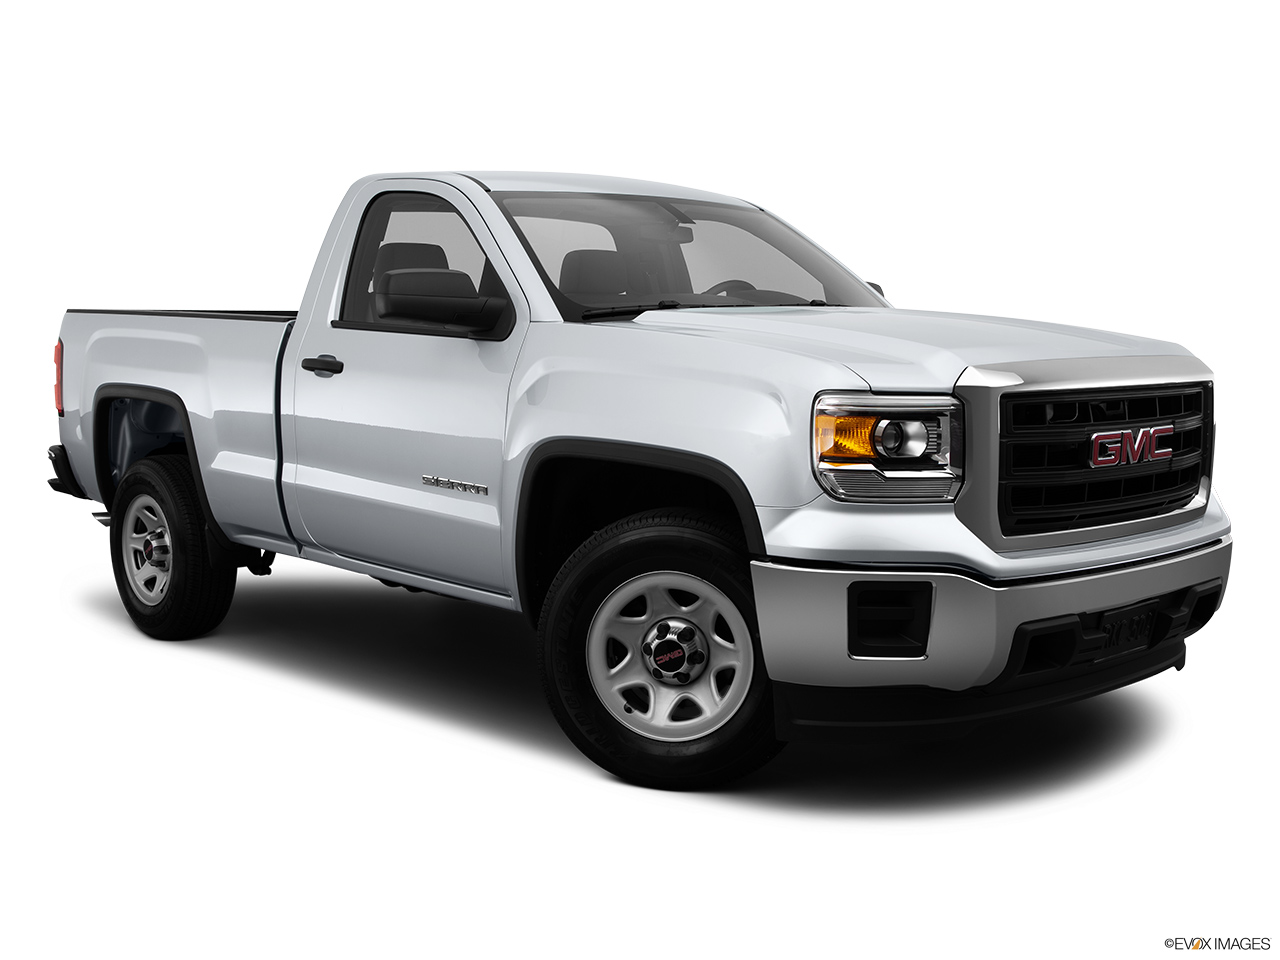 2014 gmc sierra 1500 2wd regular cab 119 0 sle. Black Bedroom Furniture Sets. Home Design Ideas